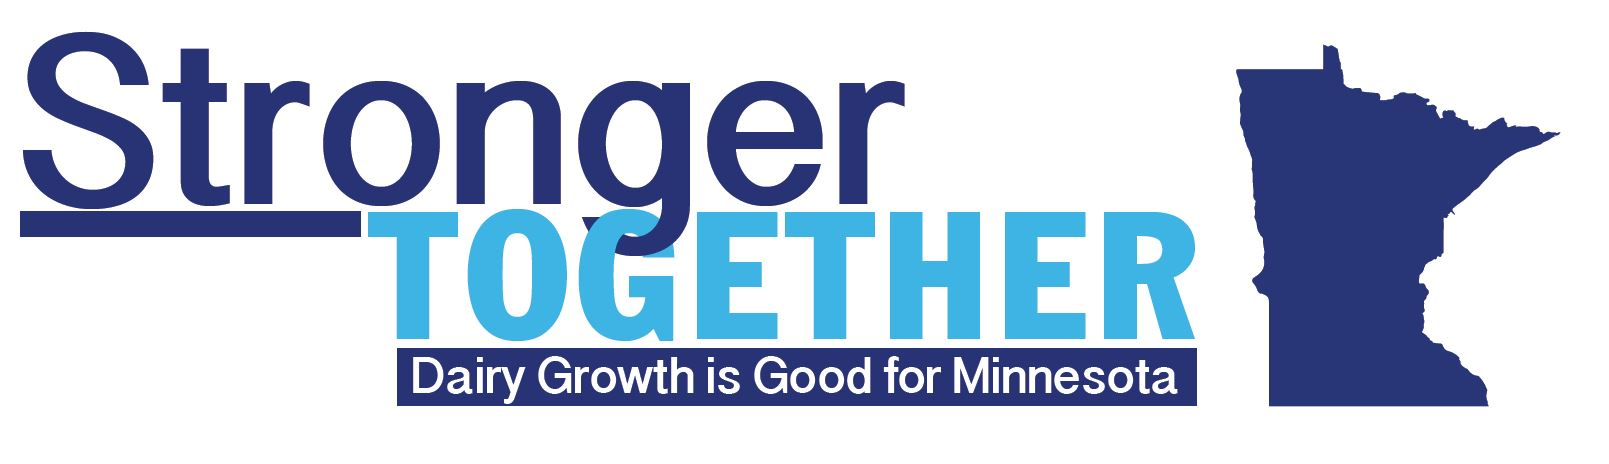 StrongerTogetherBanner